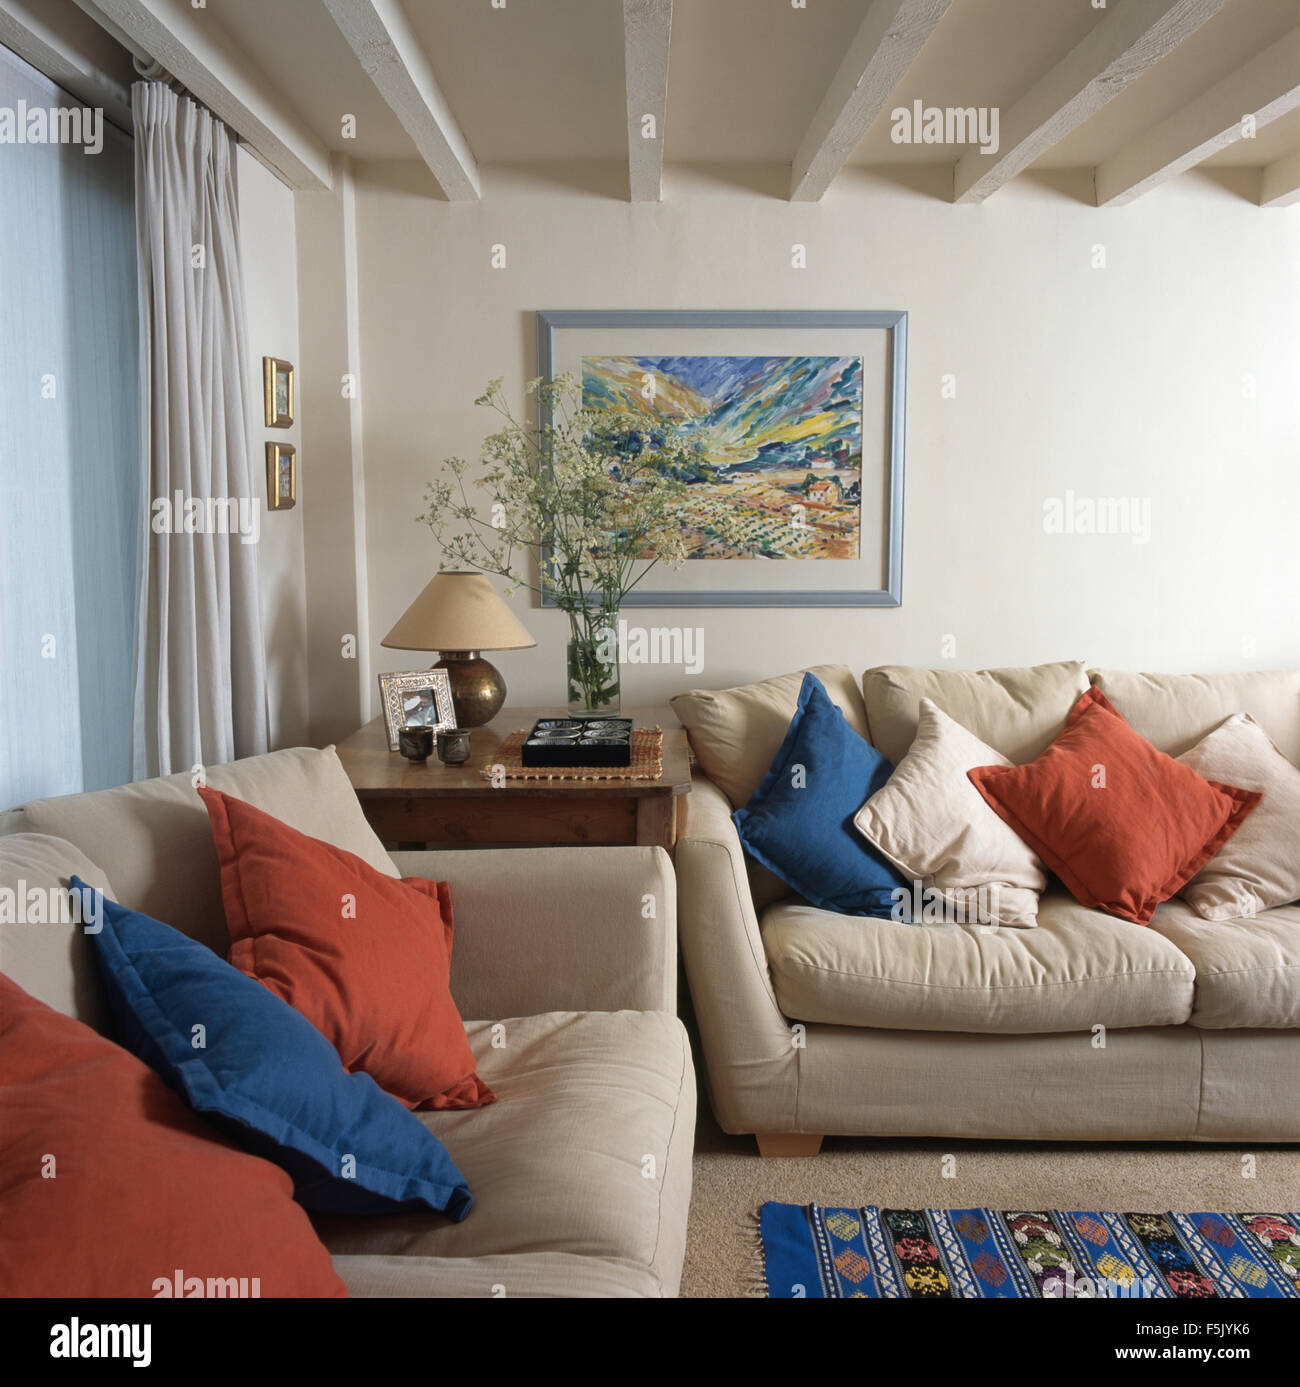 Blue And Red Cushions On Cream Sofas In A Traditional Living Room With A  Lime Washed Beamed Ceiling